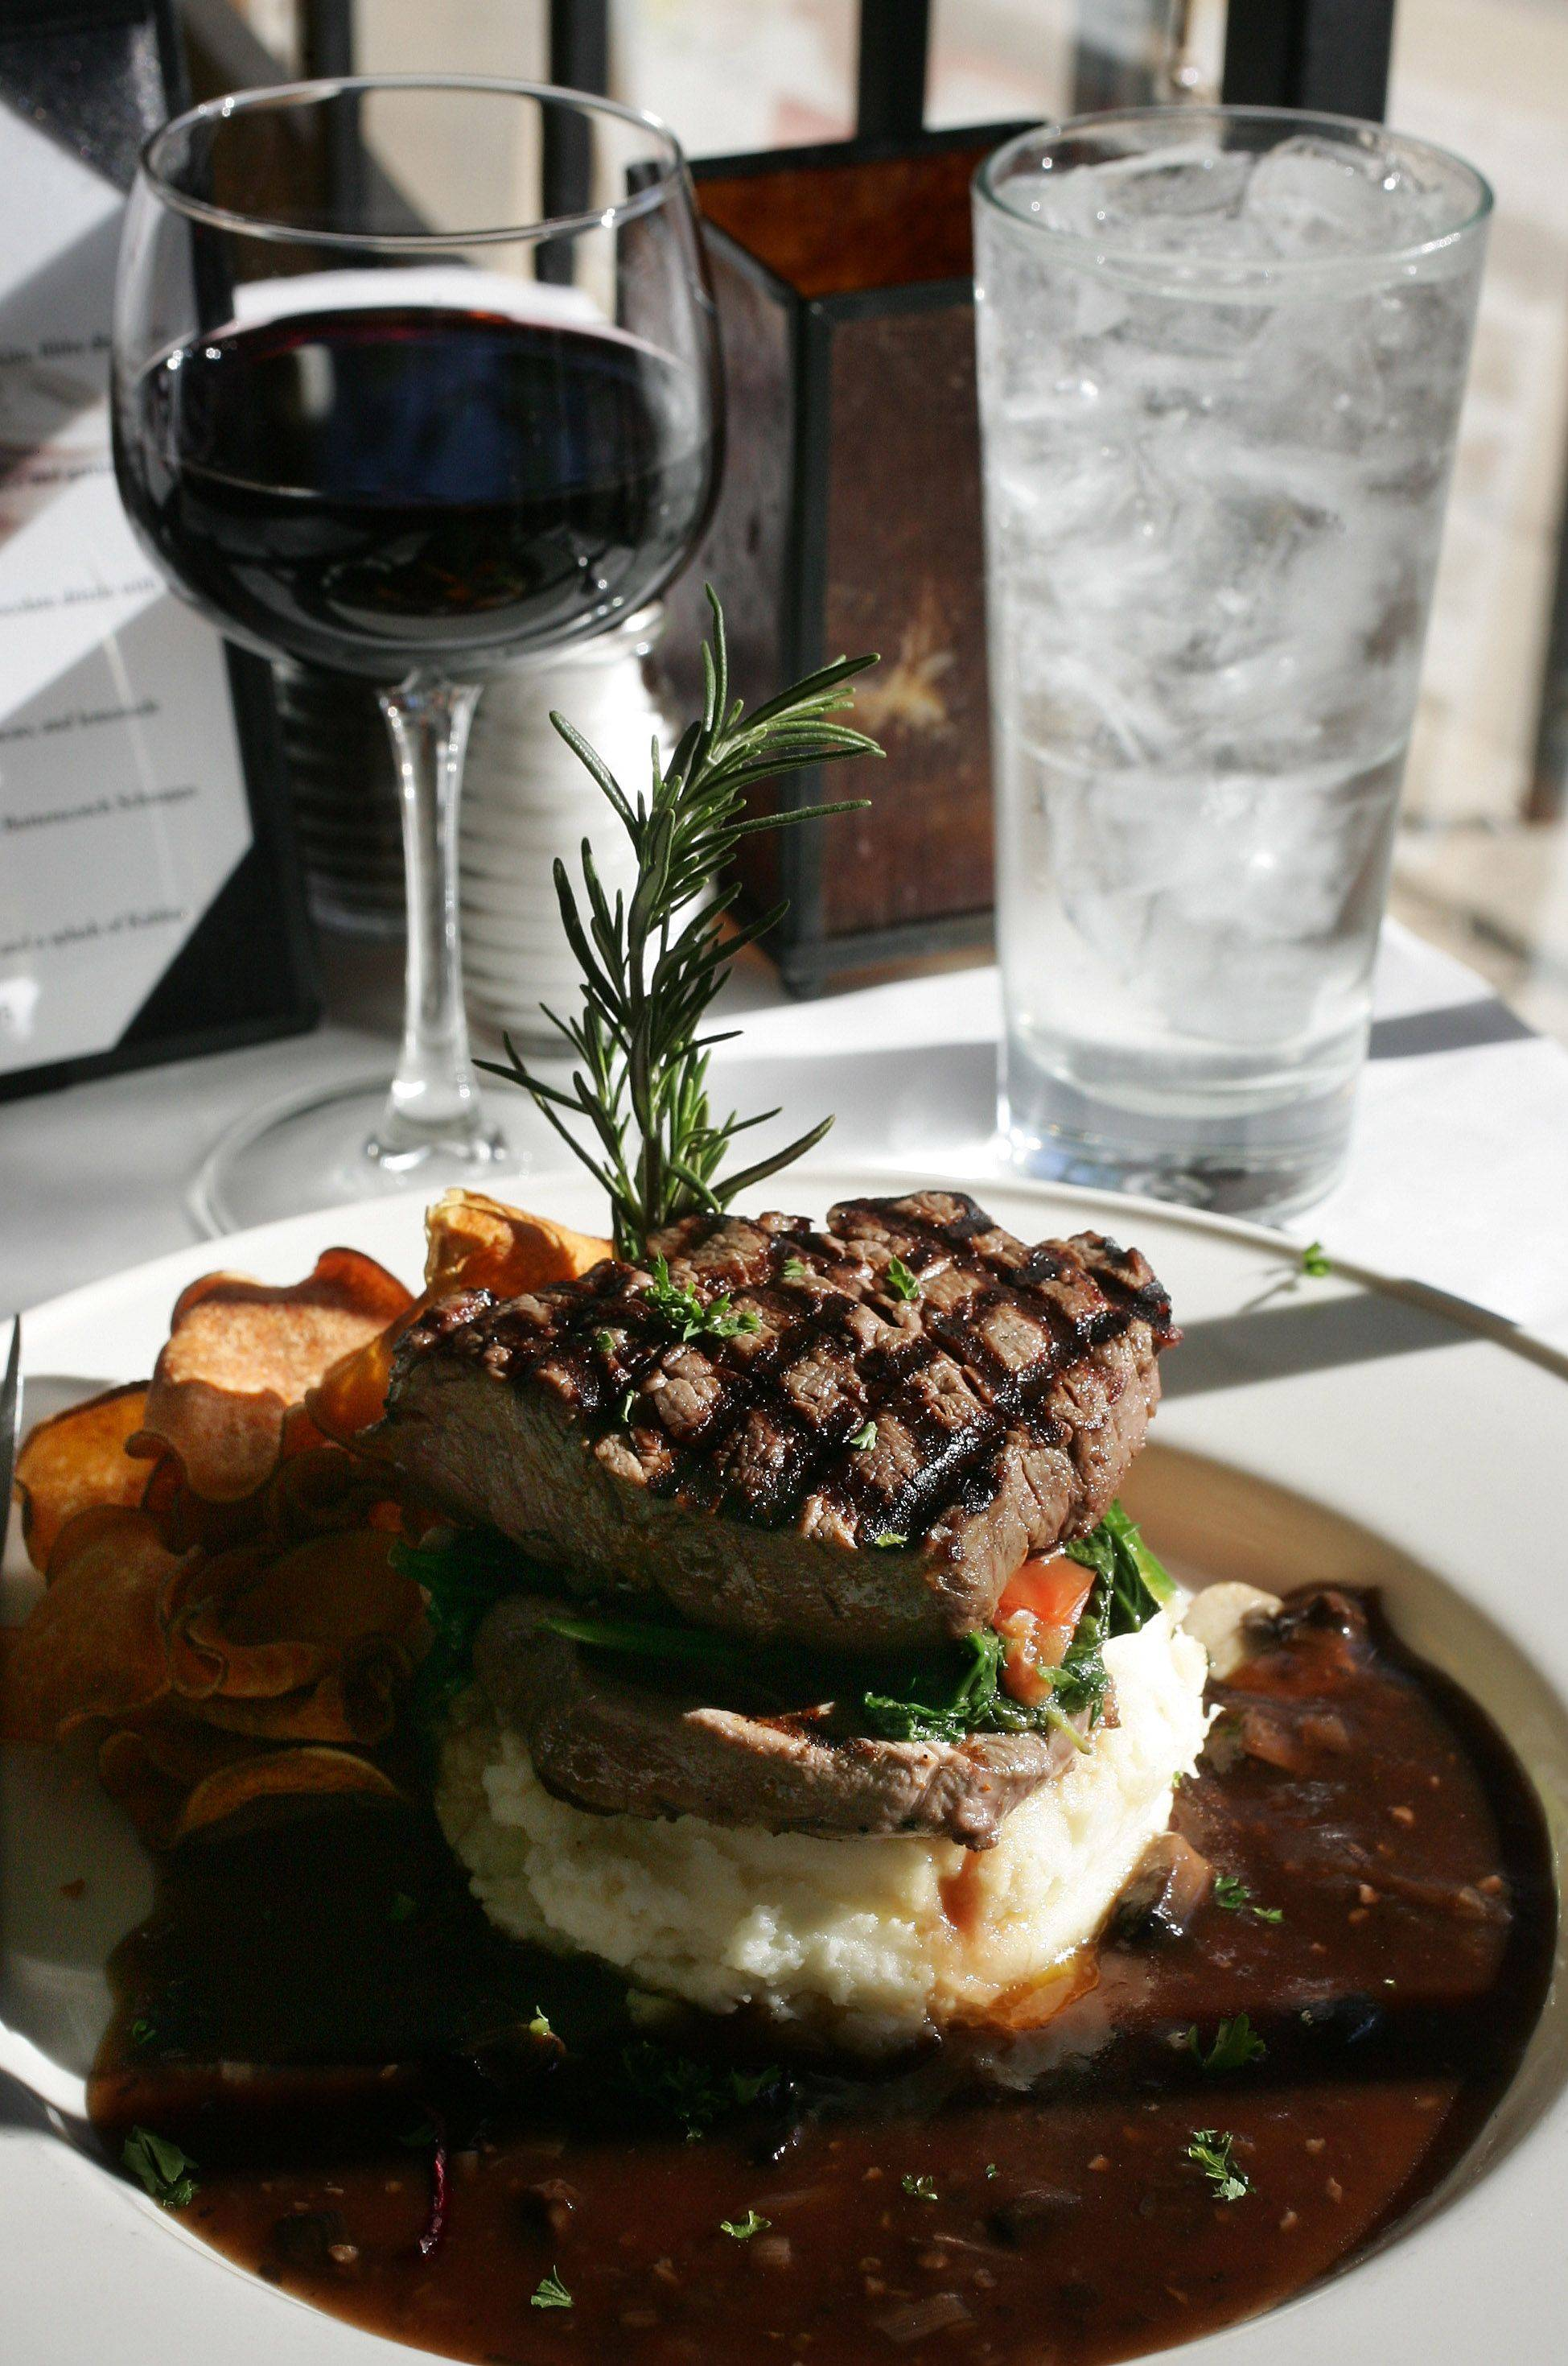 A filet stuffed with spinach, caramelized onions, tomatoes and chevre cheese is one of the beautifully rendered dishes at David's Bistro in Antioch.